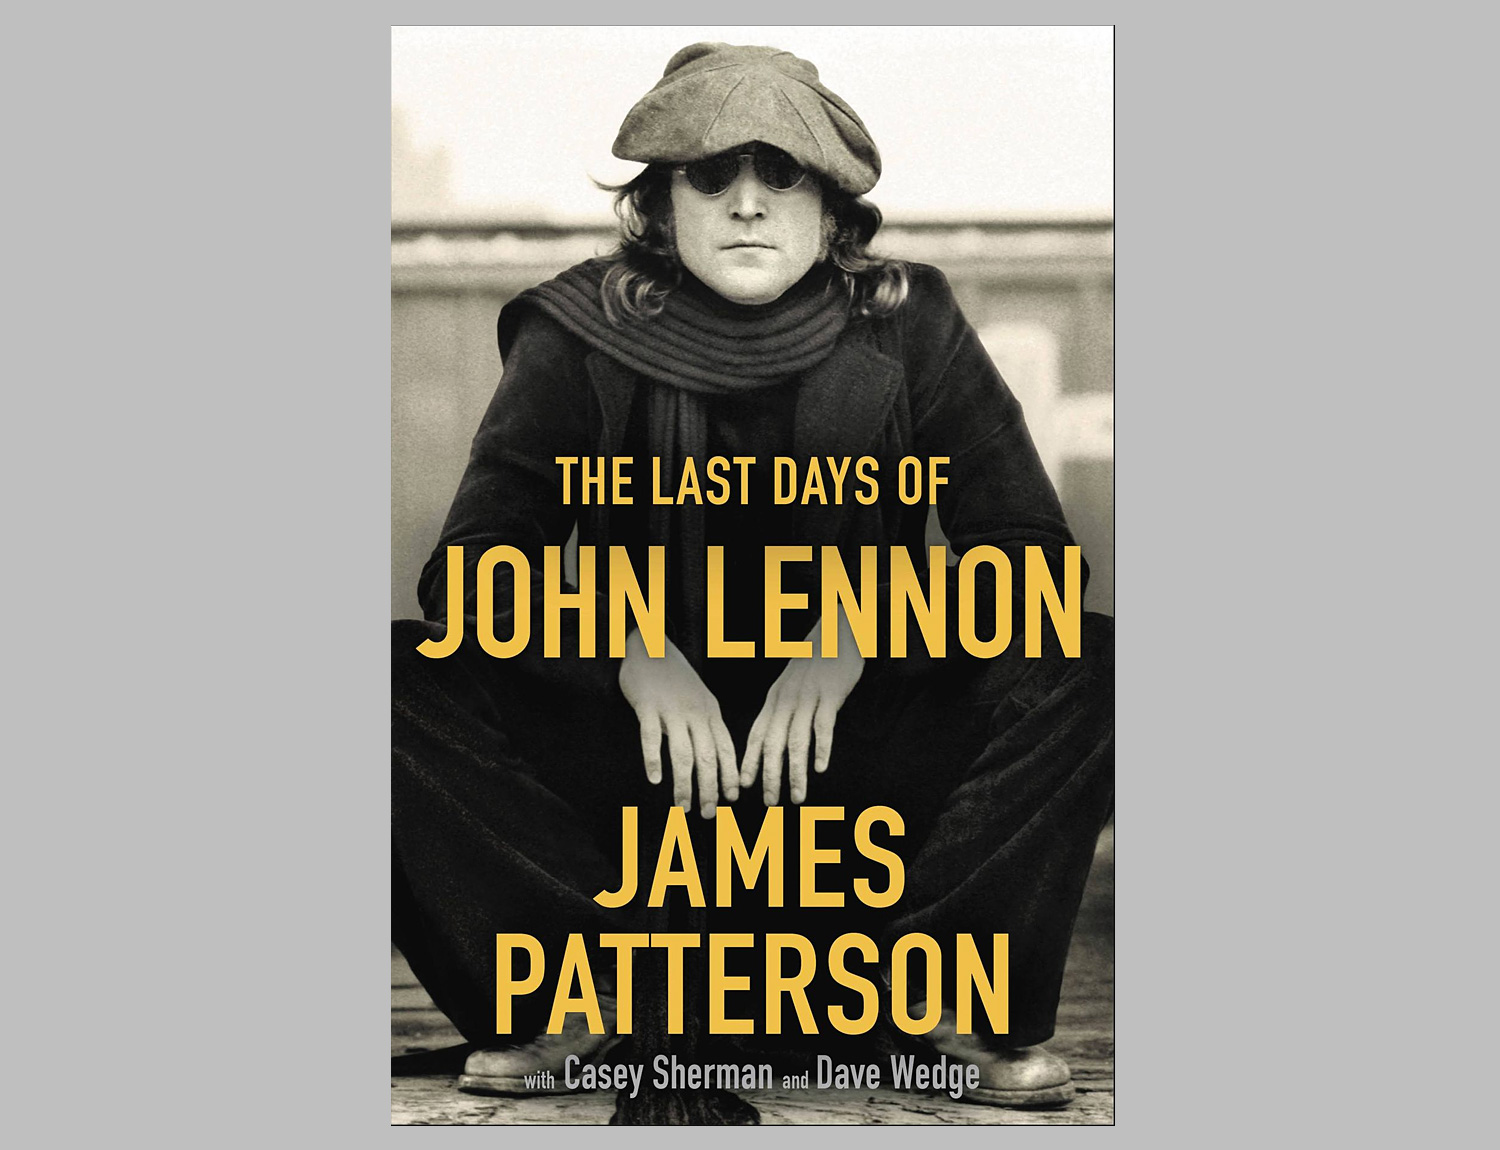 The Last Days of John Lennon at werd.com